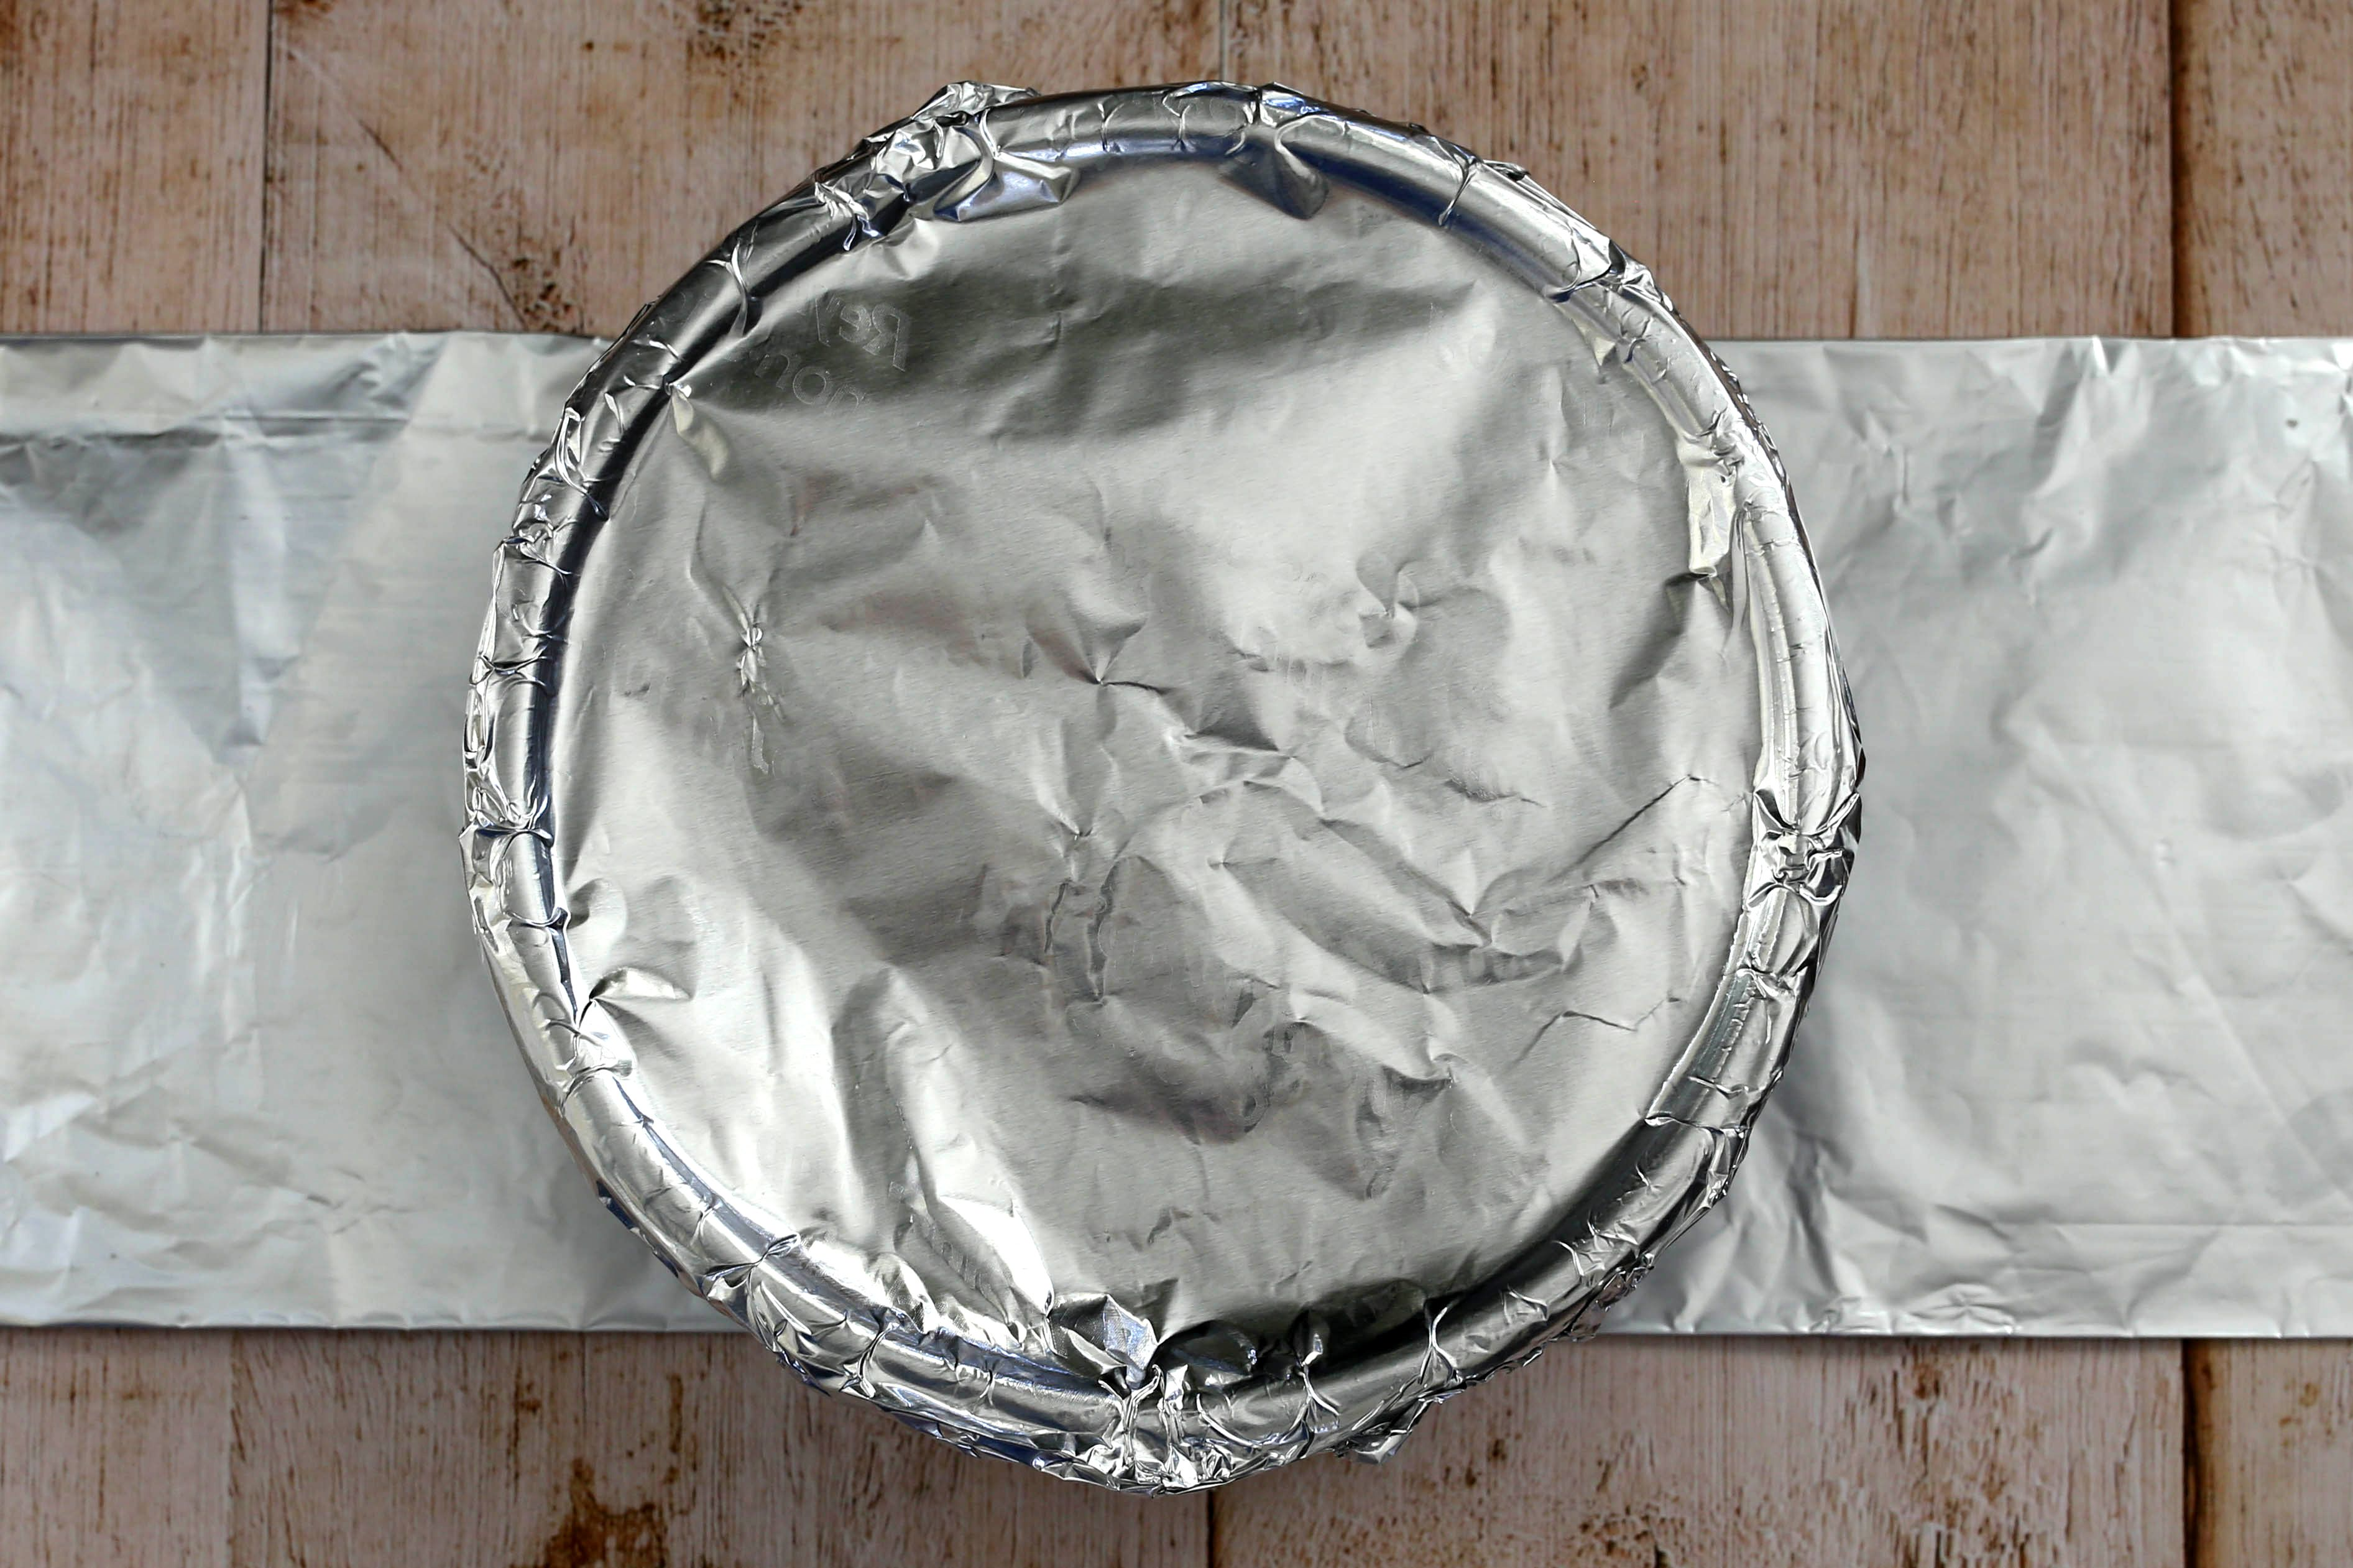 Cover the pan tightly with foil.